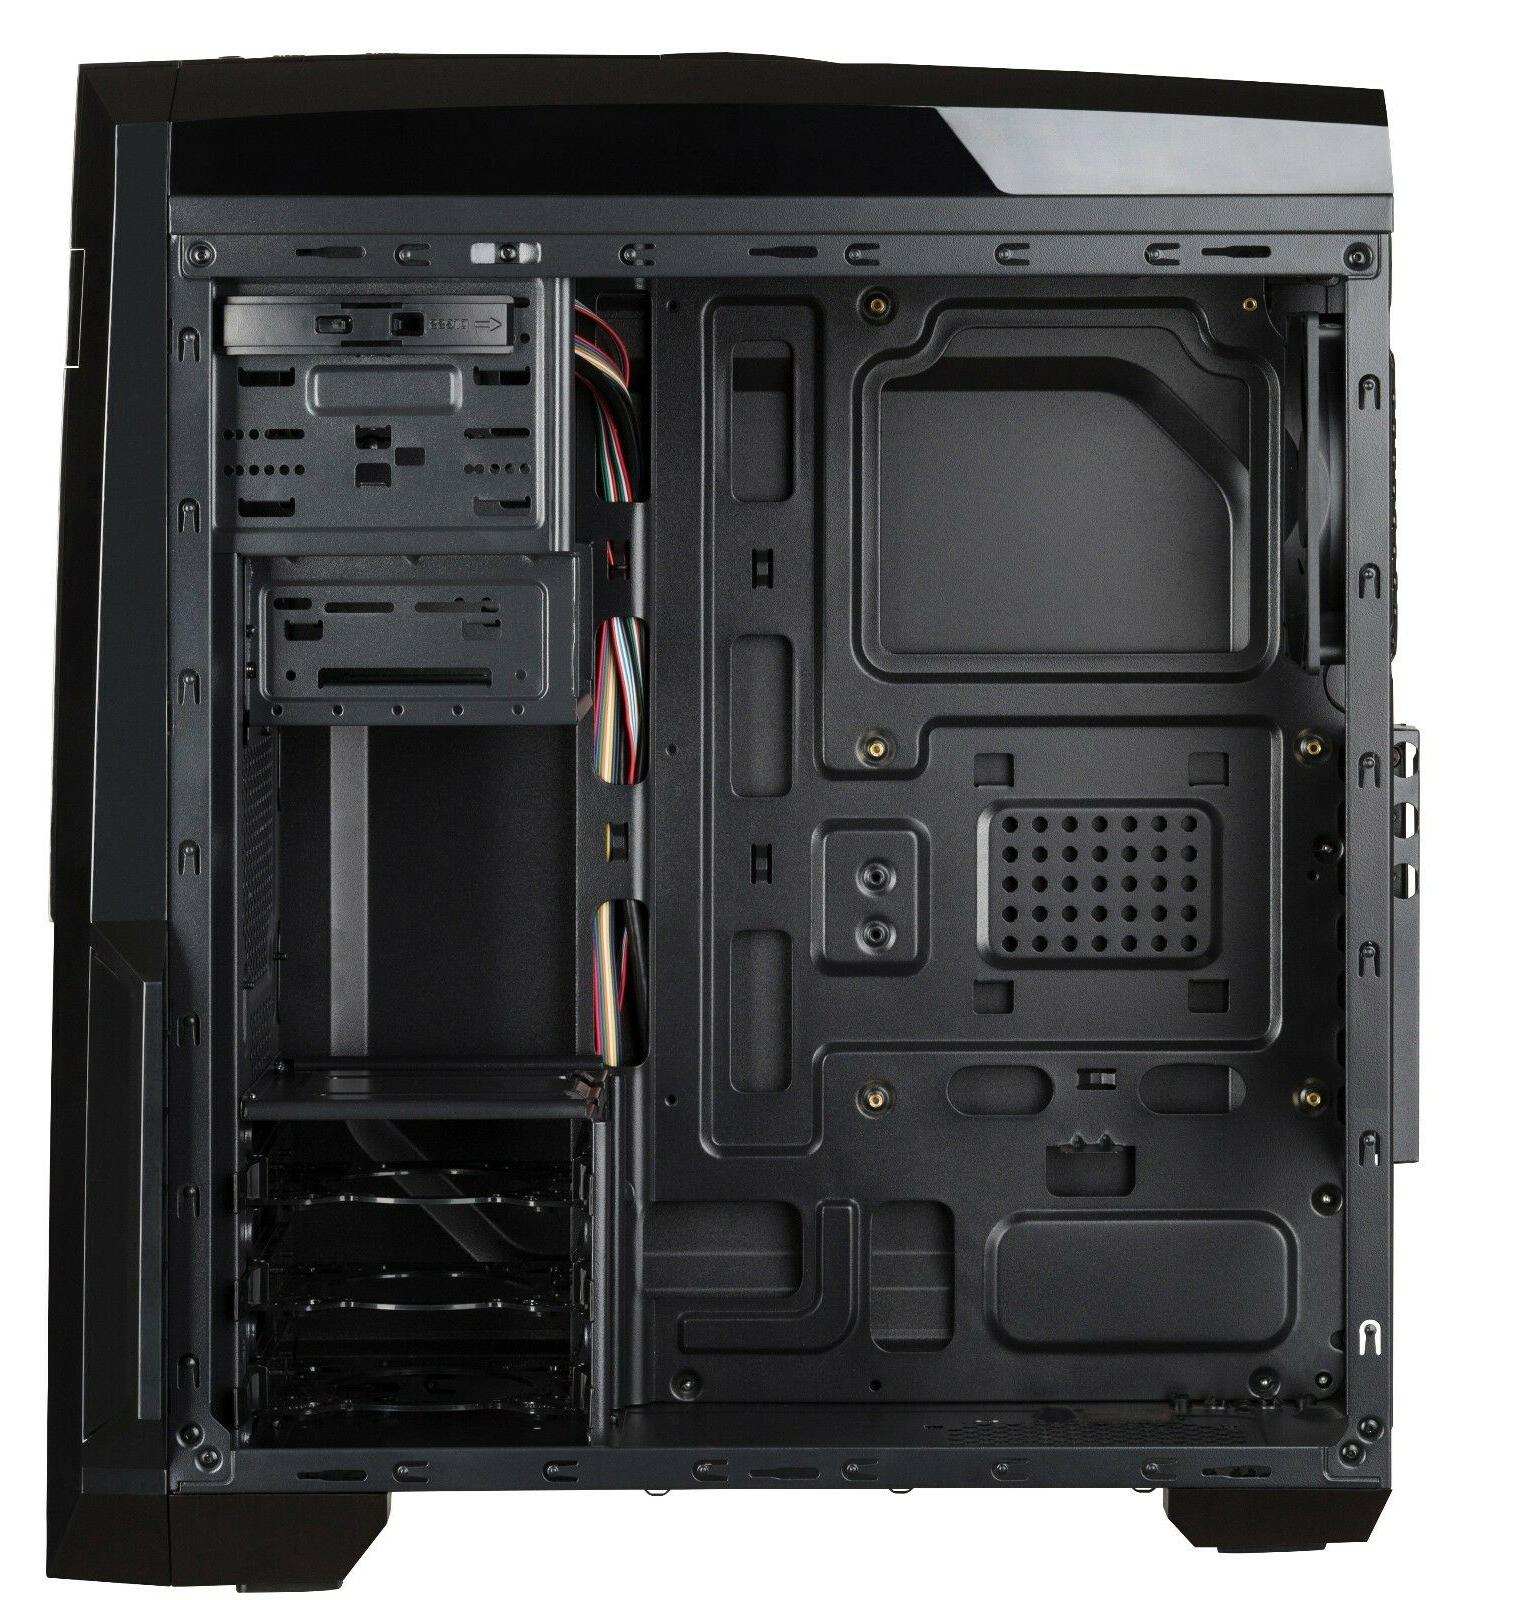 NAUTILUS ATX Computer Case, Supports to 380 mm long VGA Card, Pre-installed